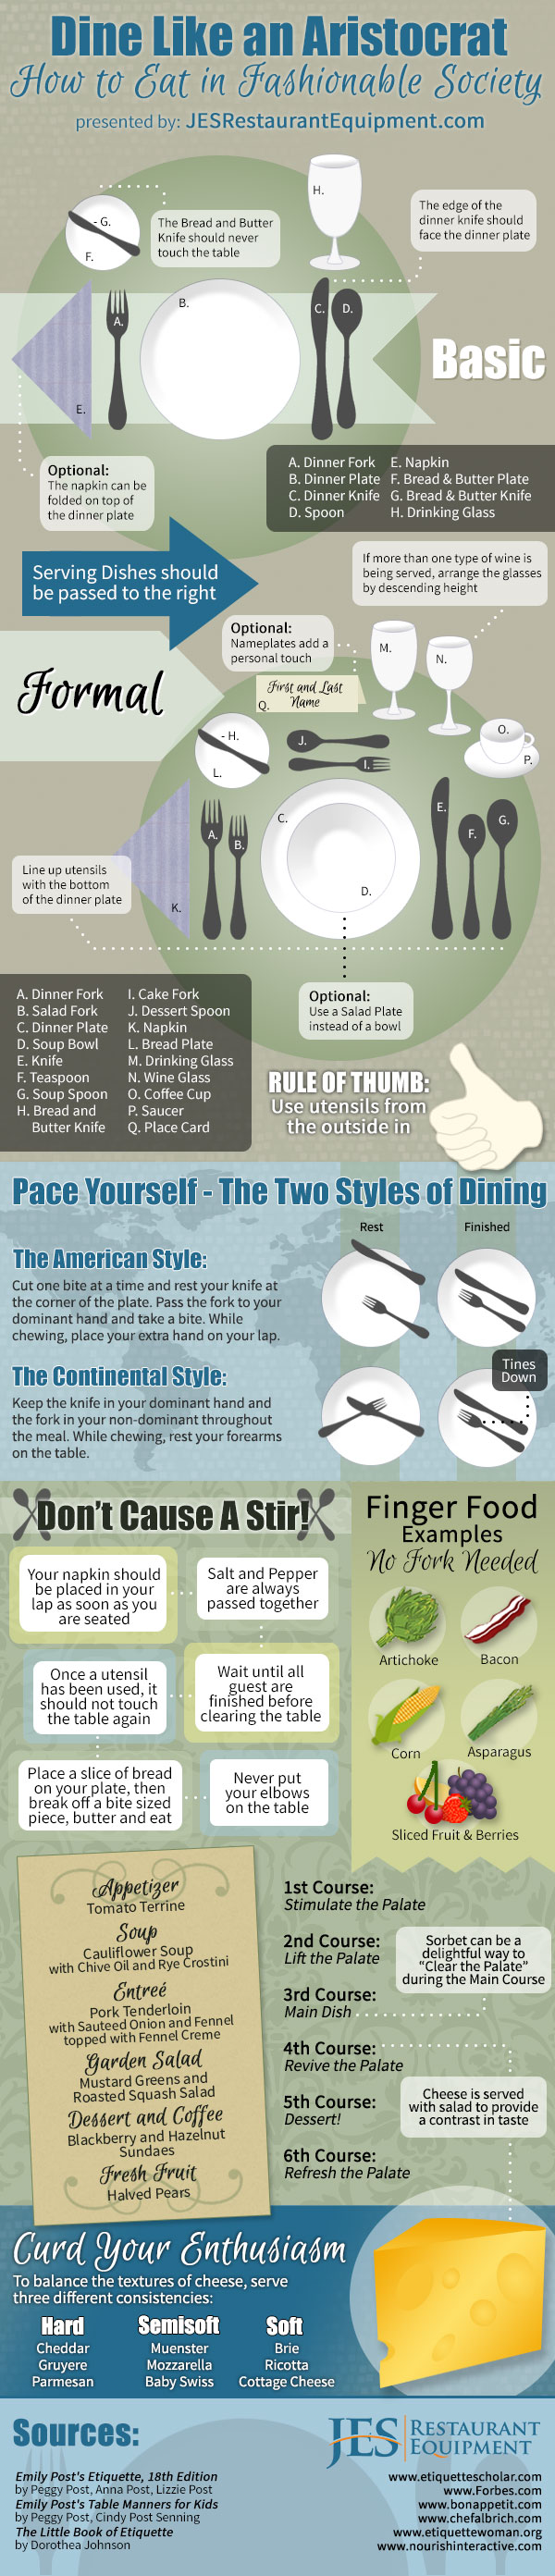 Rules of Table Etiquette in High Society [Infographic]